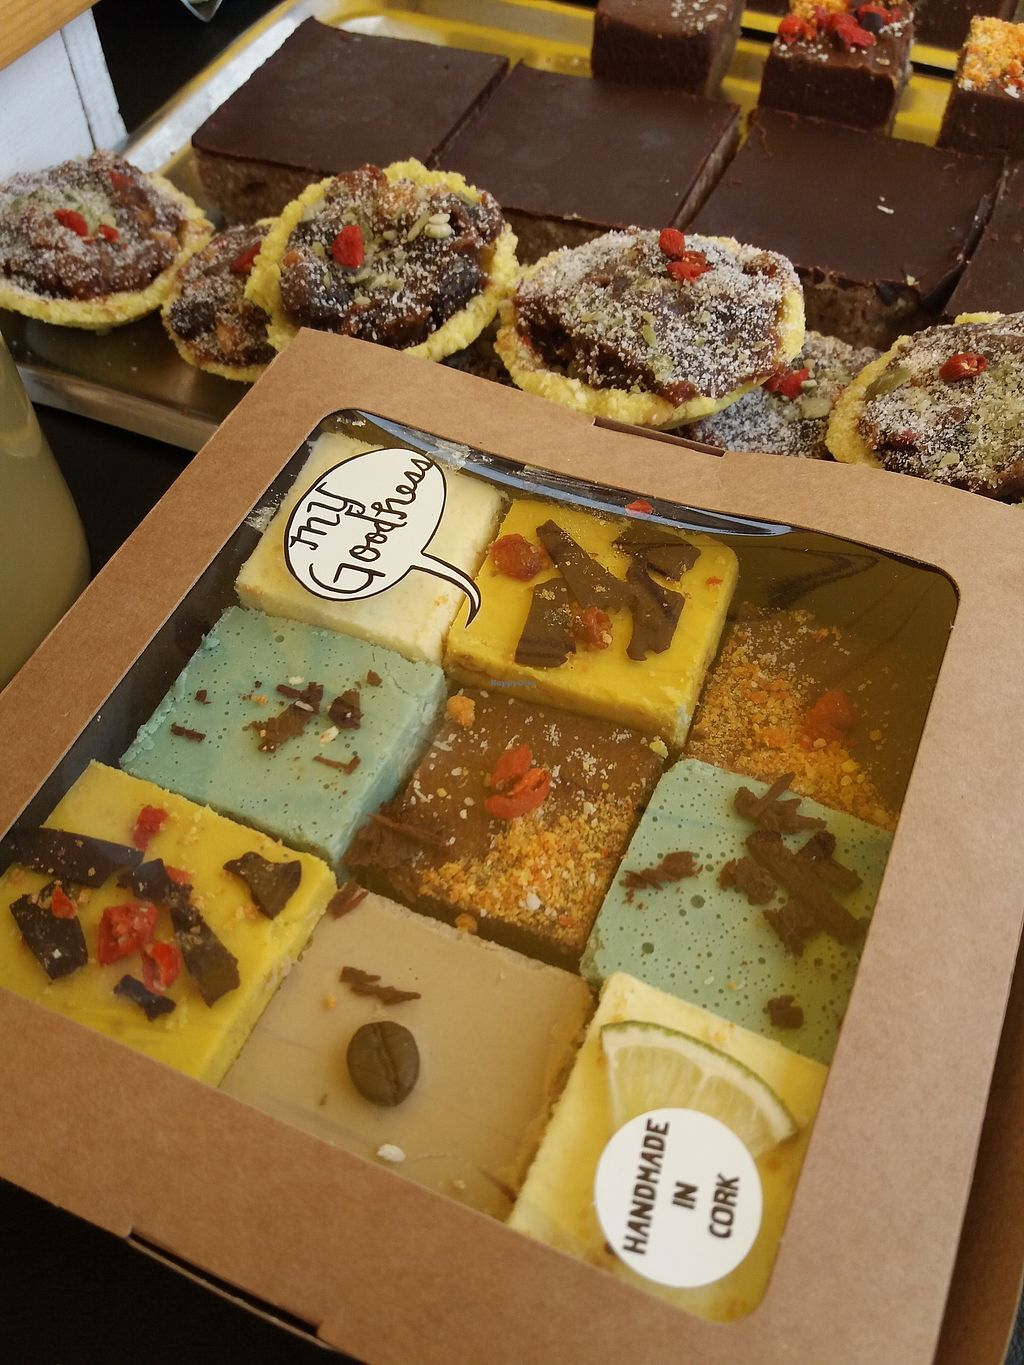 "Photo of My Goodness  by <a href=""/members/profile/TaylorNelsen"">TaylorNelsen</a> <br/>Raw cakes at the My Goodness market stall. Raw vegan truffles, raw vegan mince pies, peanut butter power bars.  <br/> November 26, 2017  - <a href='/contact/abuse/image/105957/329342'>Report</a>"